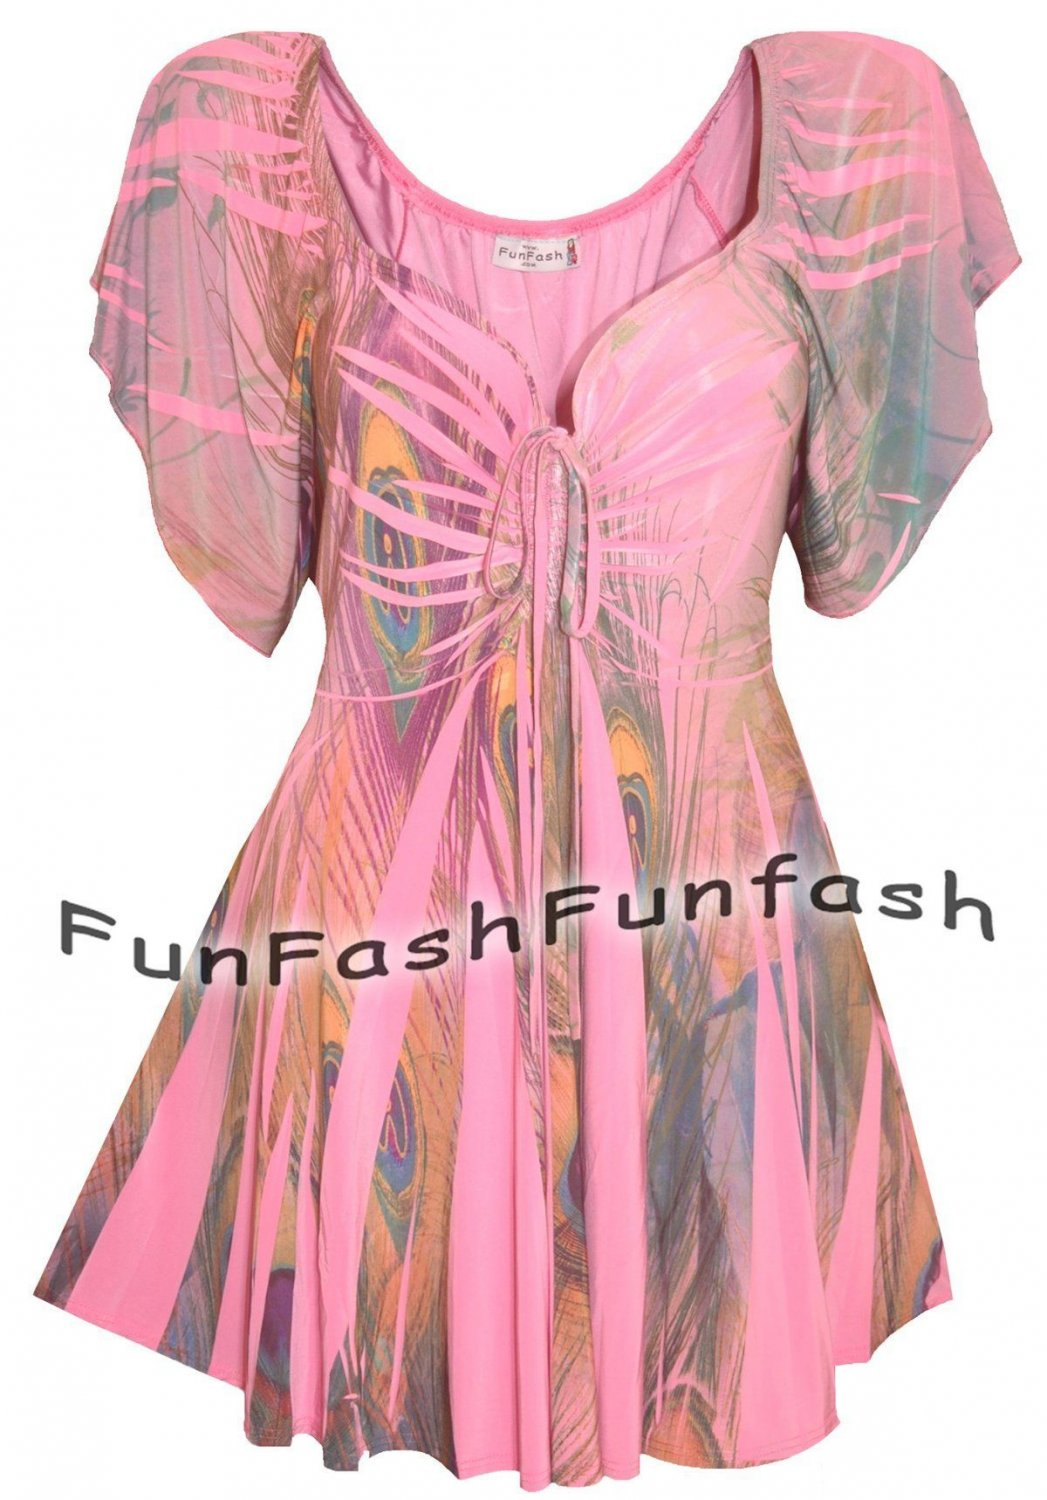 HE2 FUNFASH WOMENS PLUS SIZE TOP PINK PEACOCK EMPIRE WAIST SHIRT BLOUSE 1X 18 20